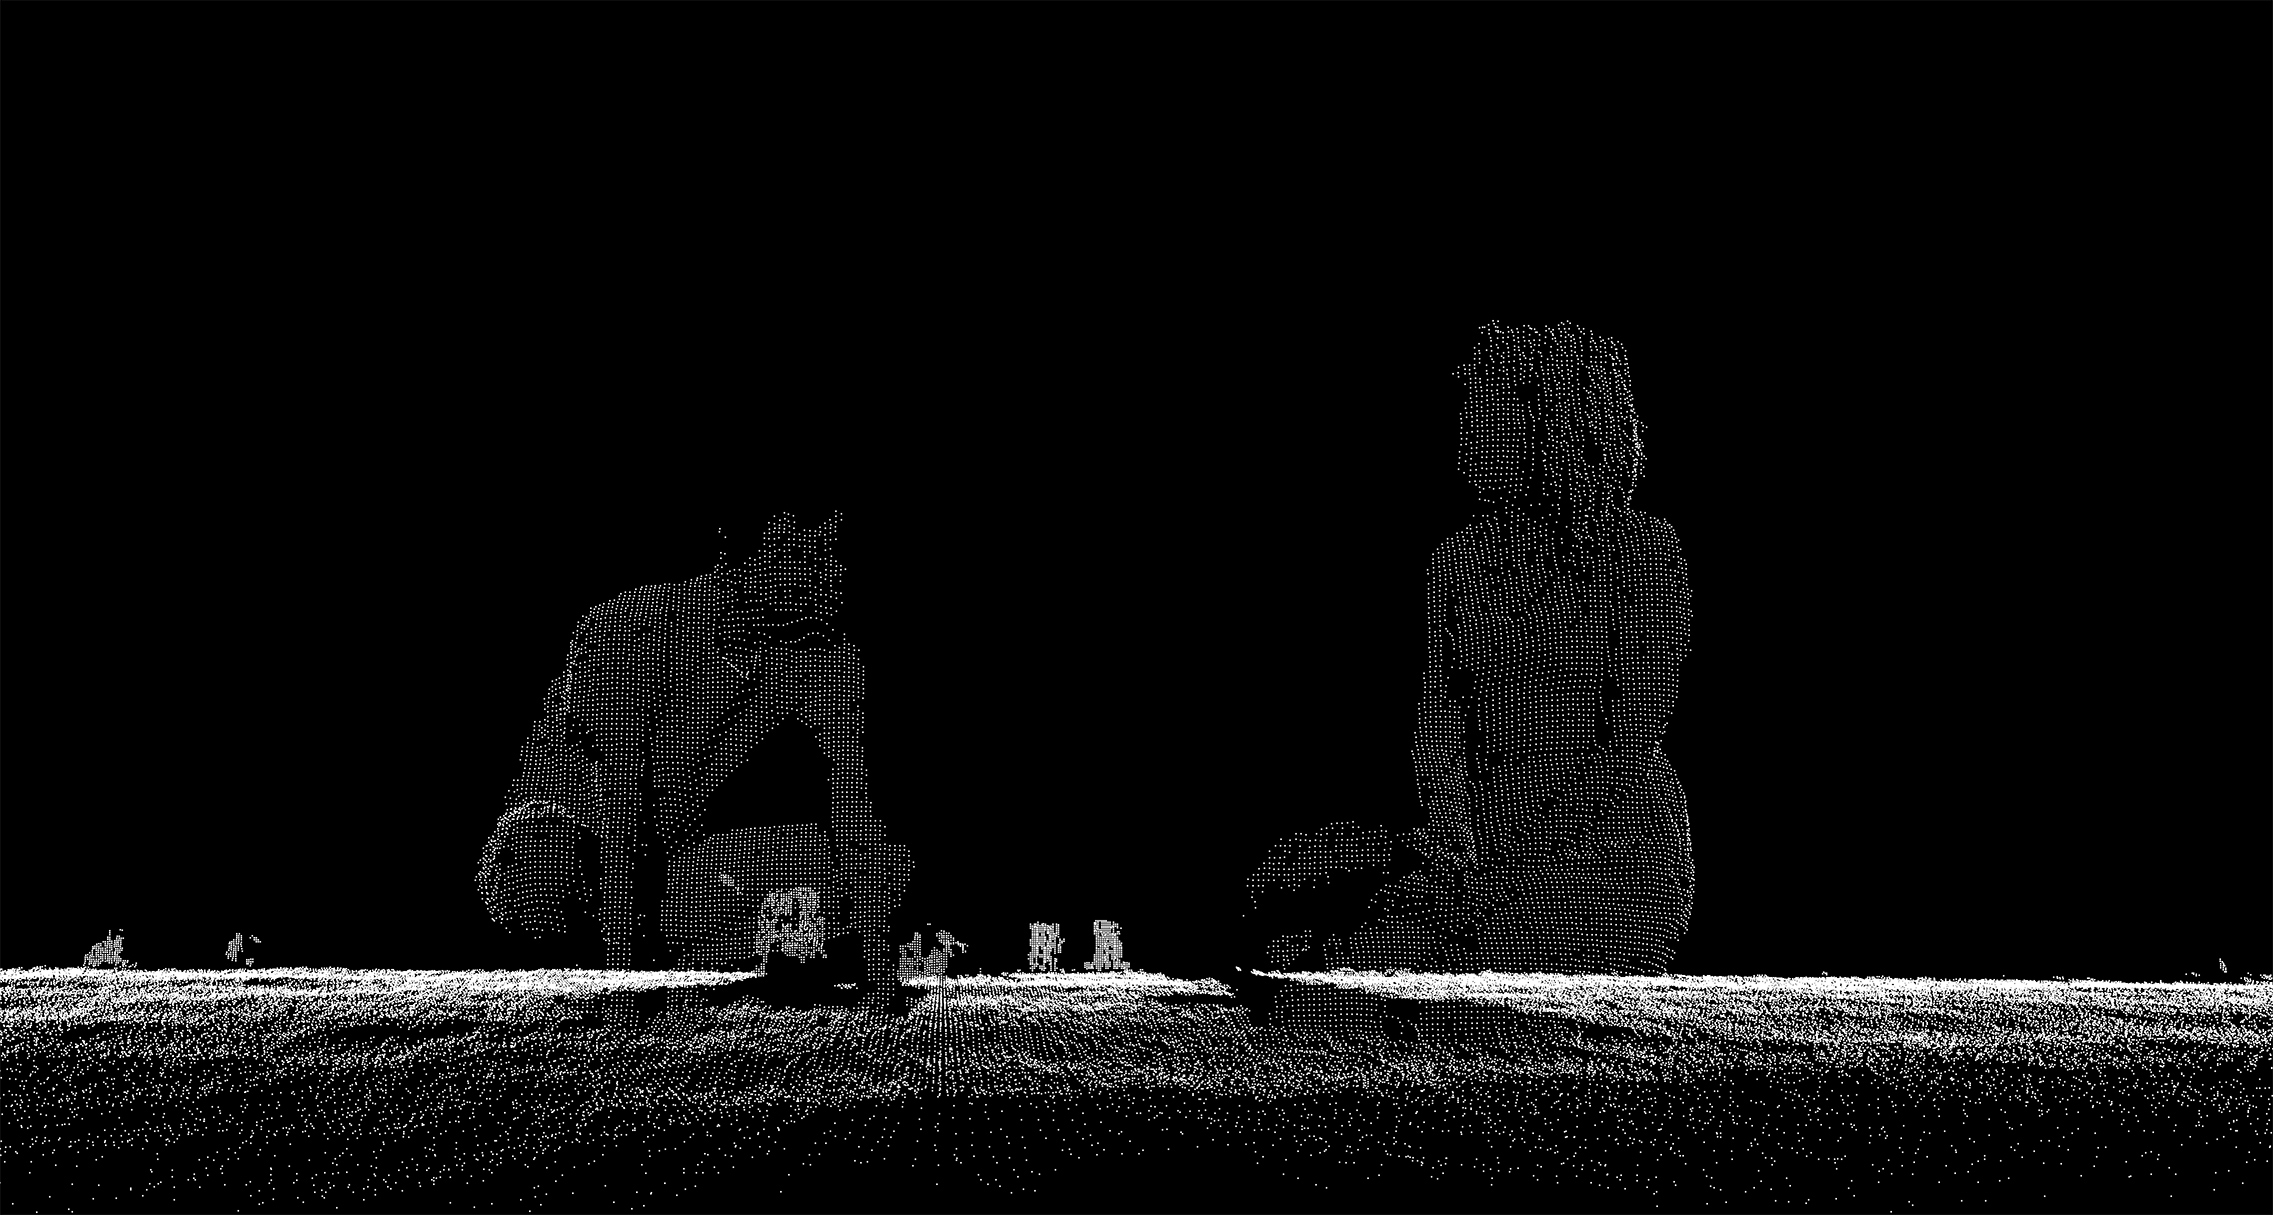 mynd-workshop-central-park-couple10-3D-laser-scanning-point-cloud-new-york.jpg